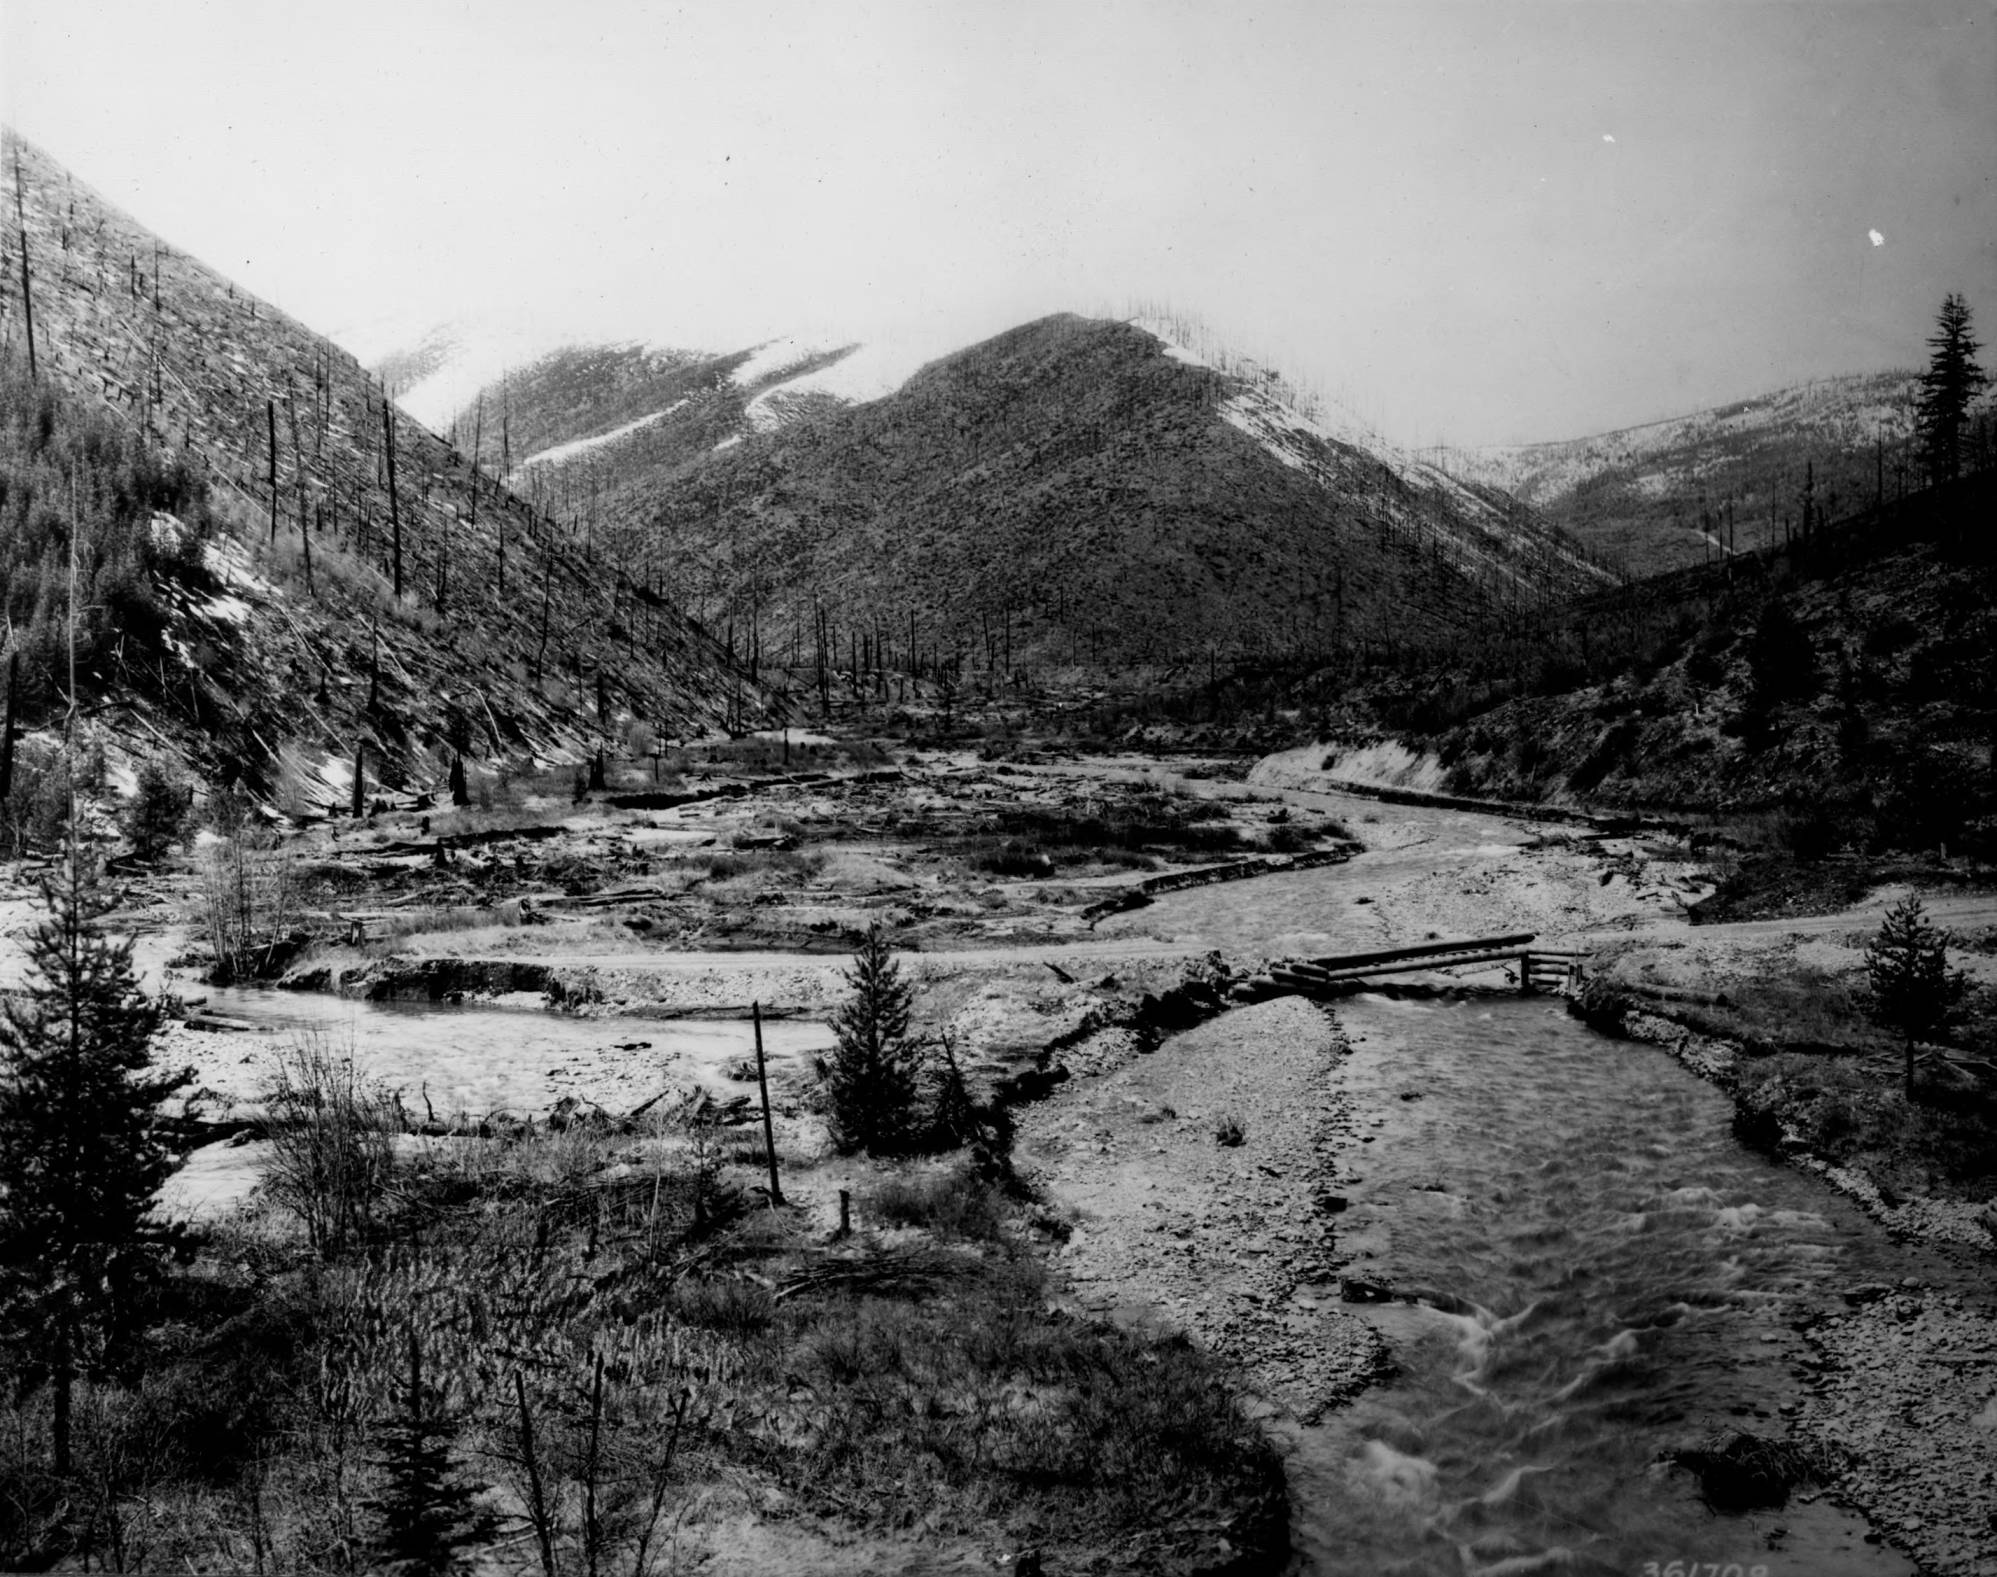 item thumbnail for Flood and watershed damage related to 1910 fire, Big Creek Valley